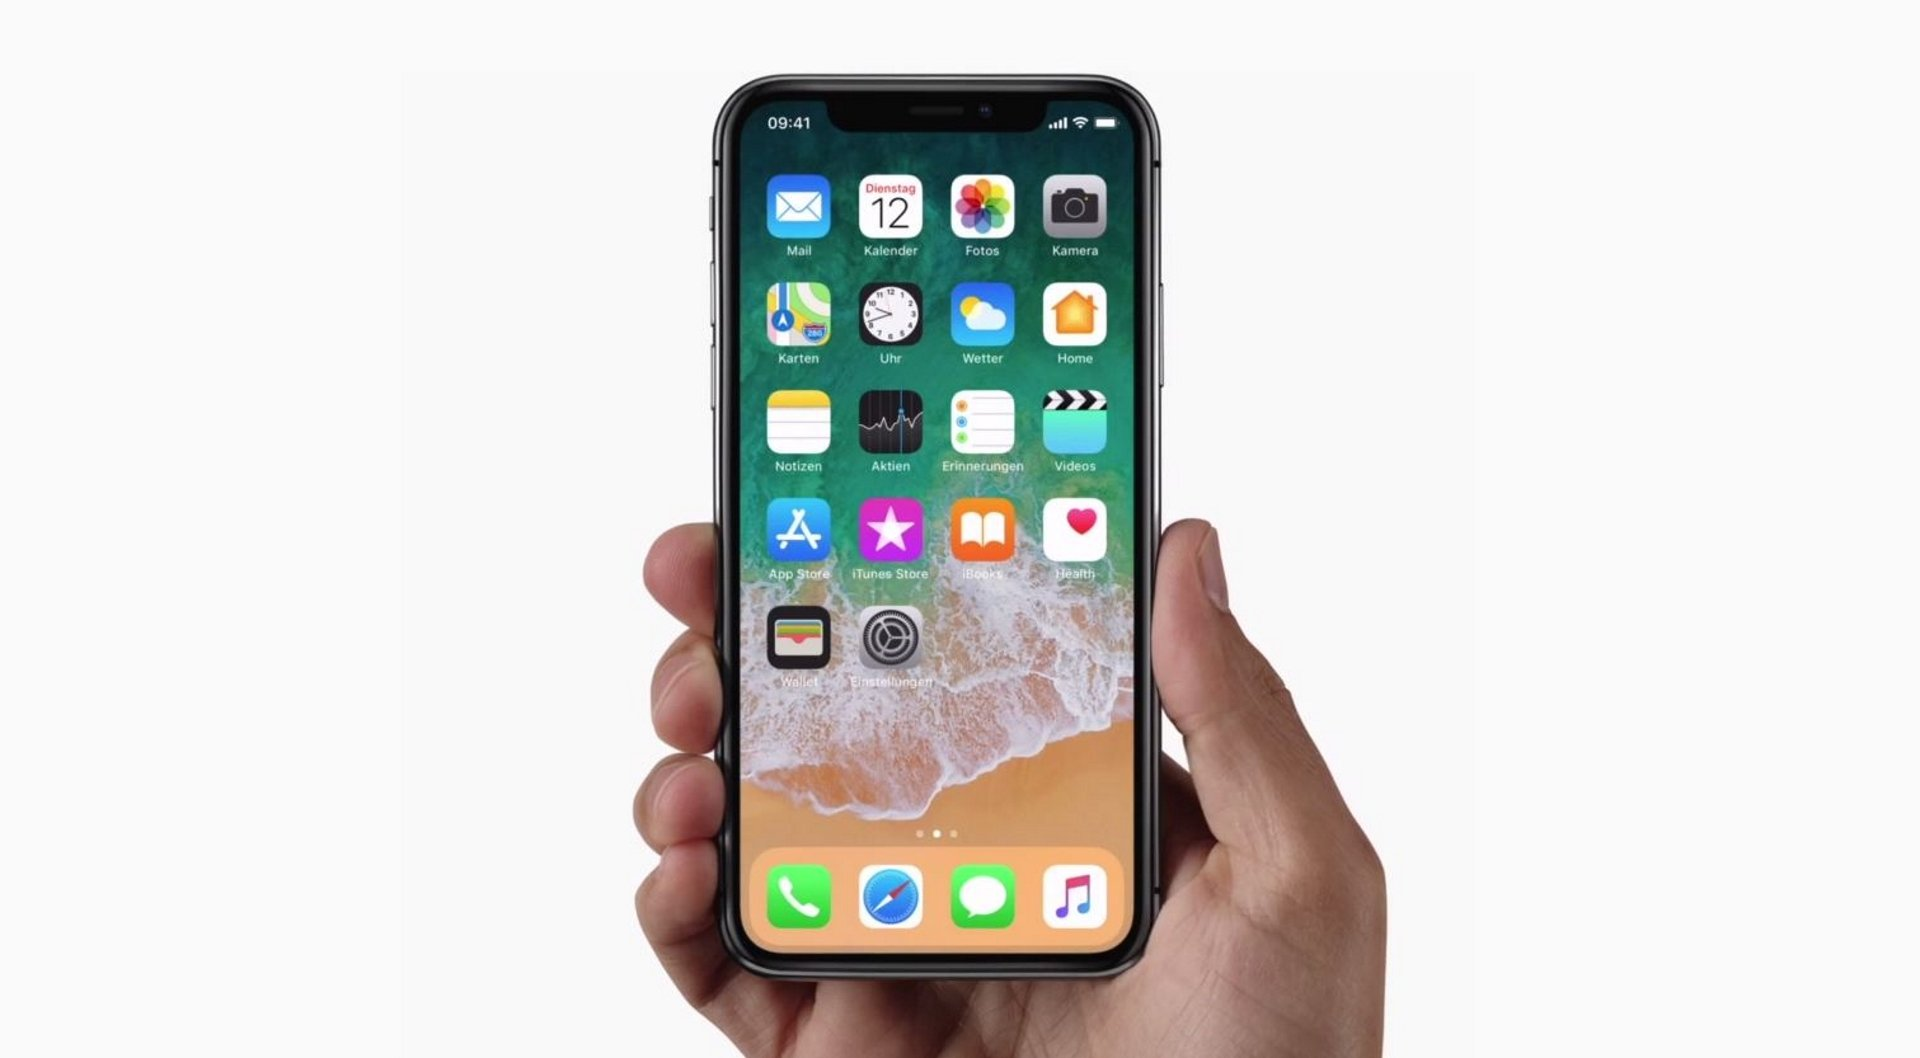 Neue iOS-11-Features ausprobiert | AndroidPIT